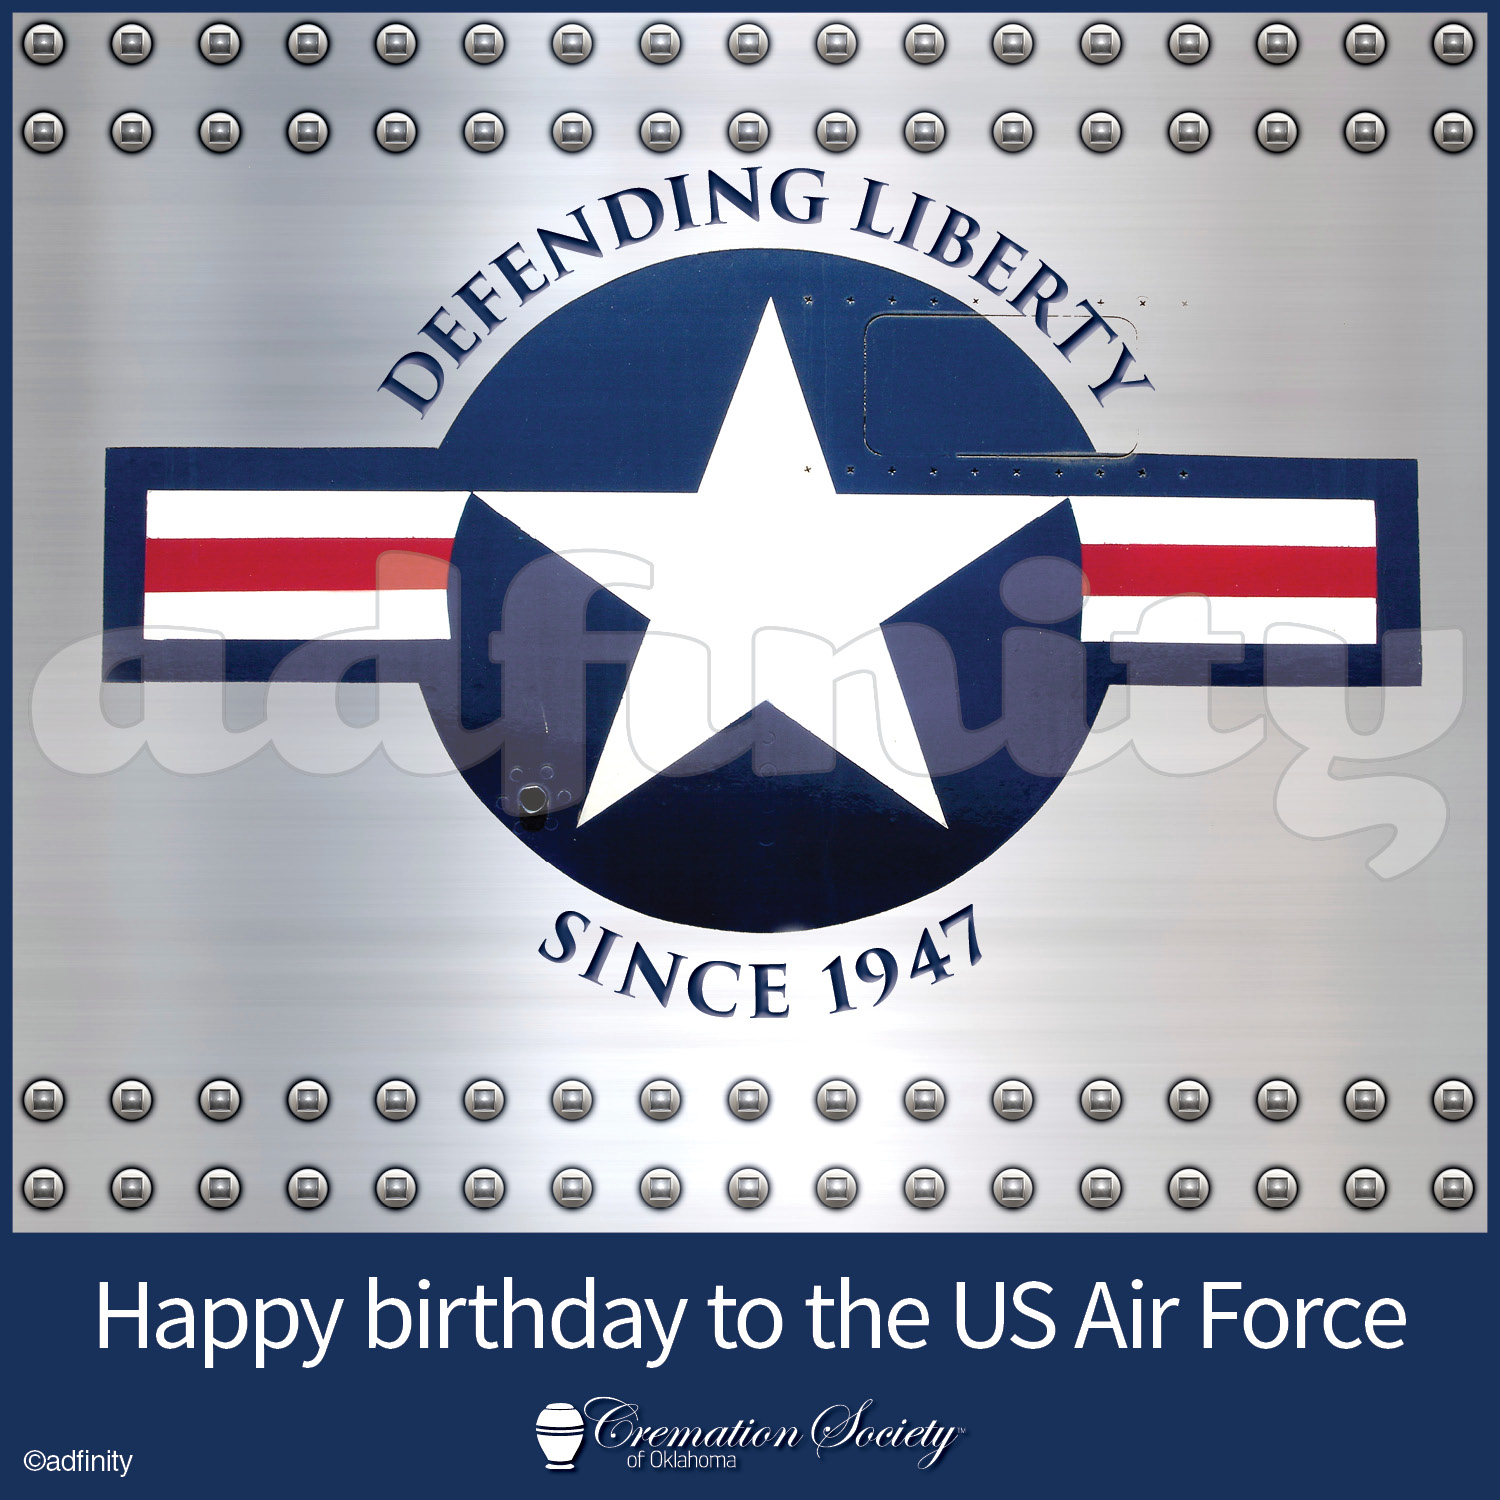 happy birthday air force ; 091502%25C2%25A0Happy+birthday+to+the+US+Air+Force%2521+Defending+Liberty+Since+1947+Air+Force+Birthday+Facebook+meme